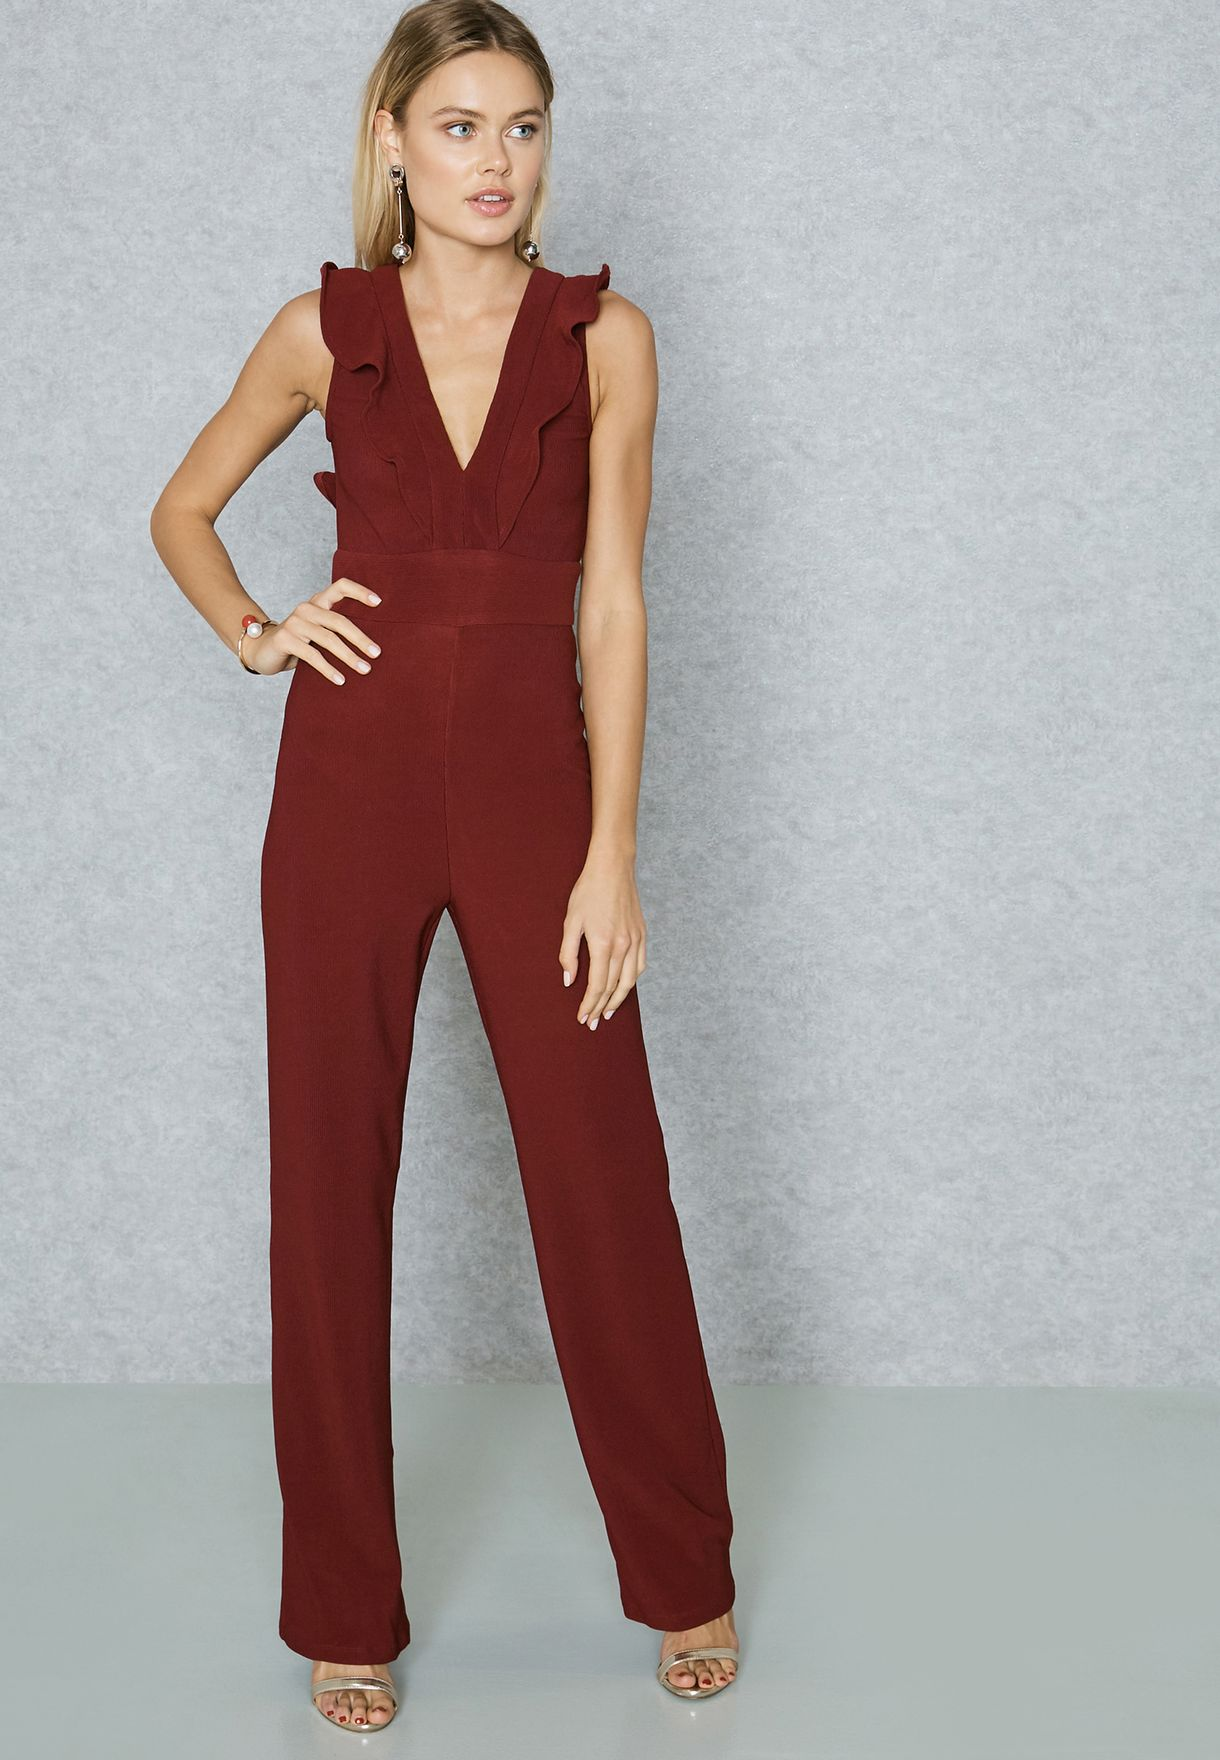 56b79bdc5d4 Shop Ginger red Ruffle Detail Jumpsuit VN8033 for Women in Oman ...